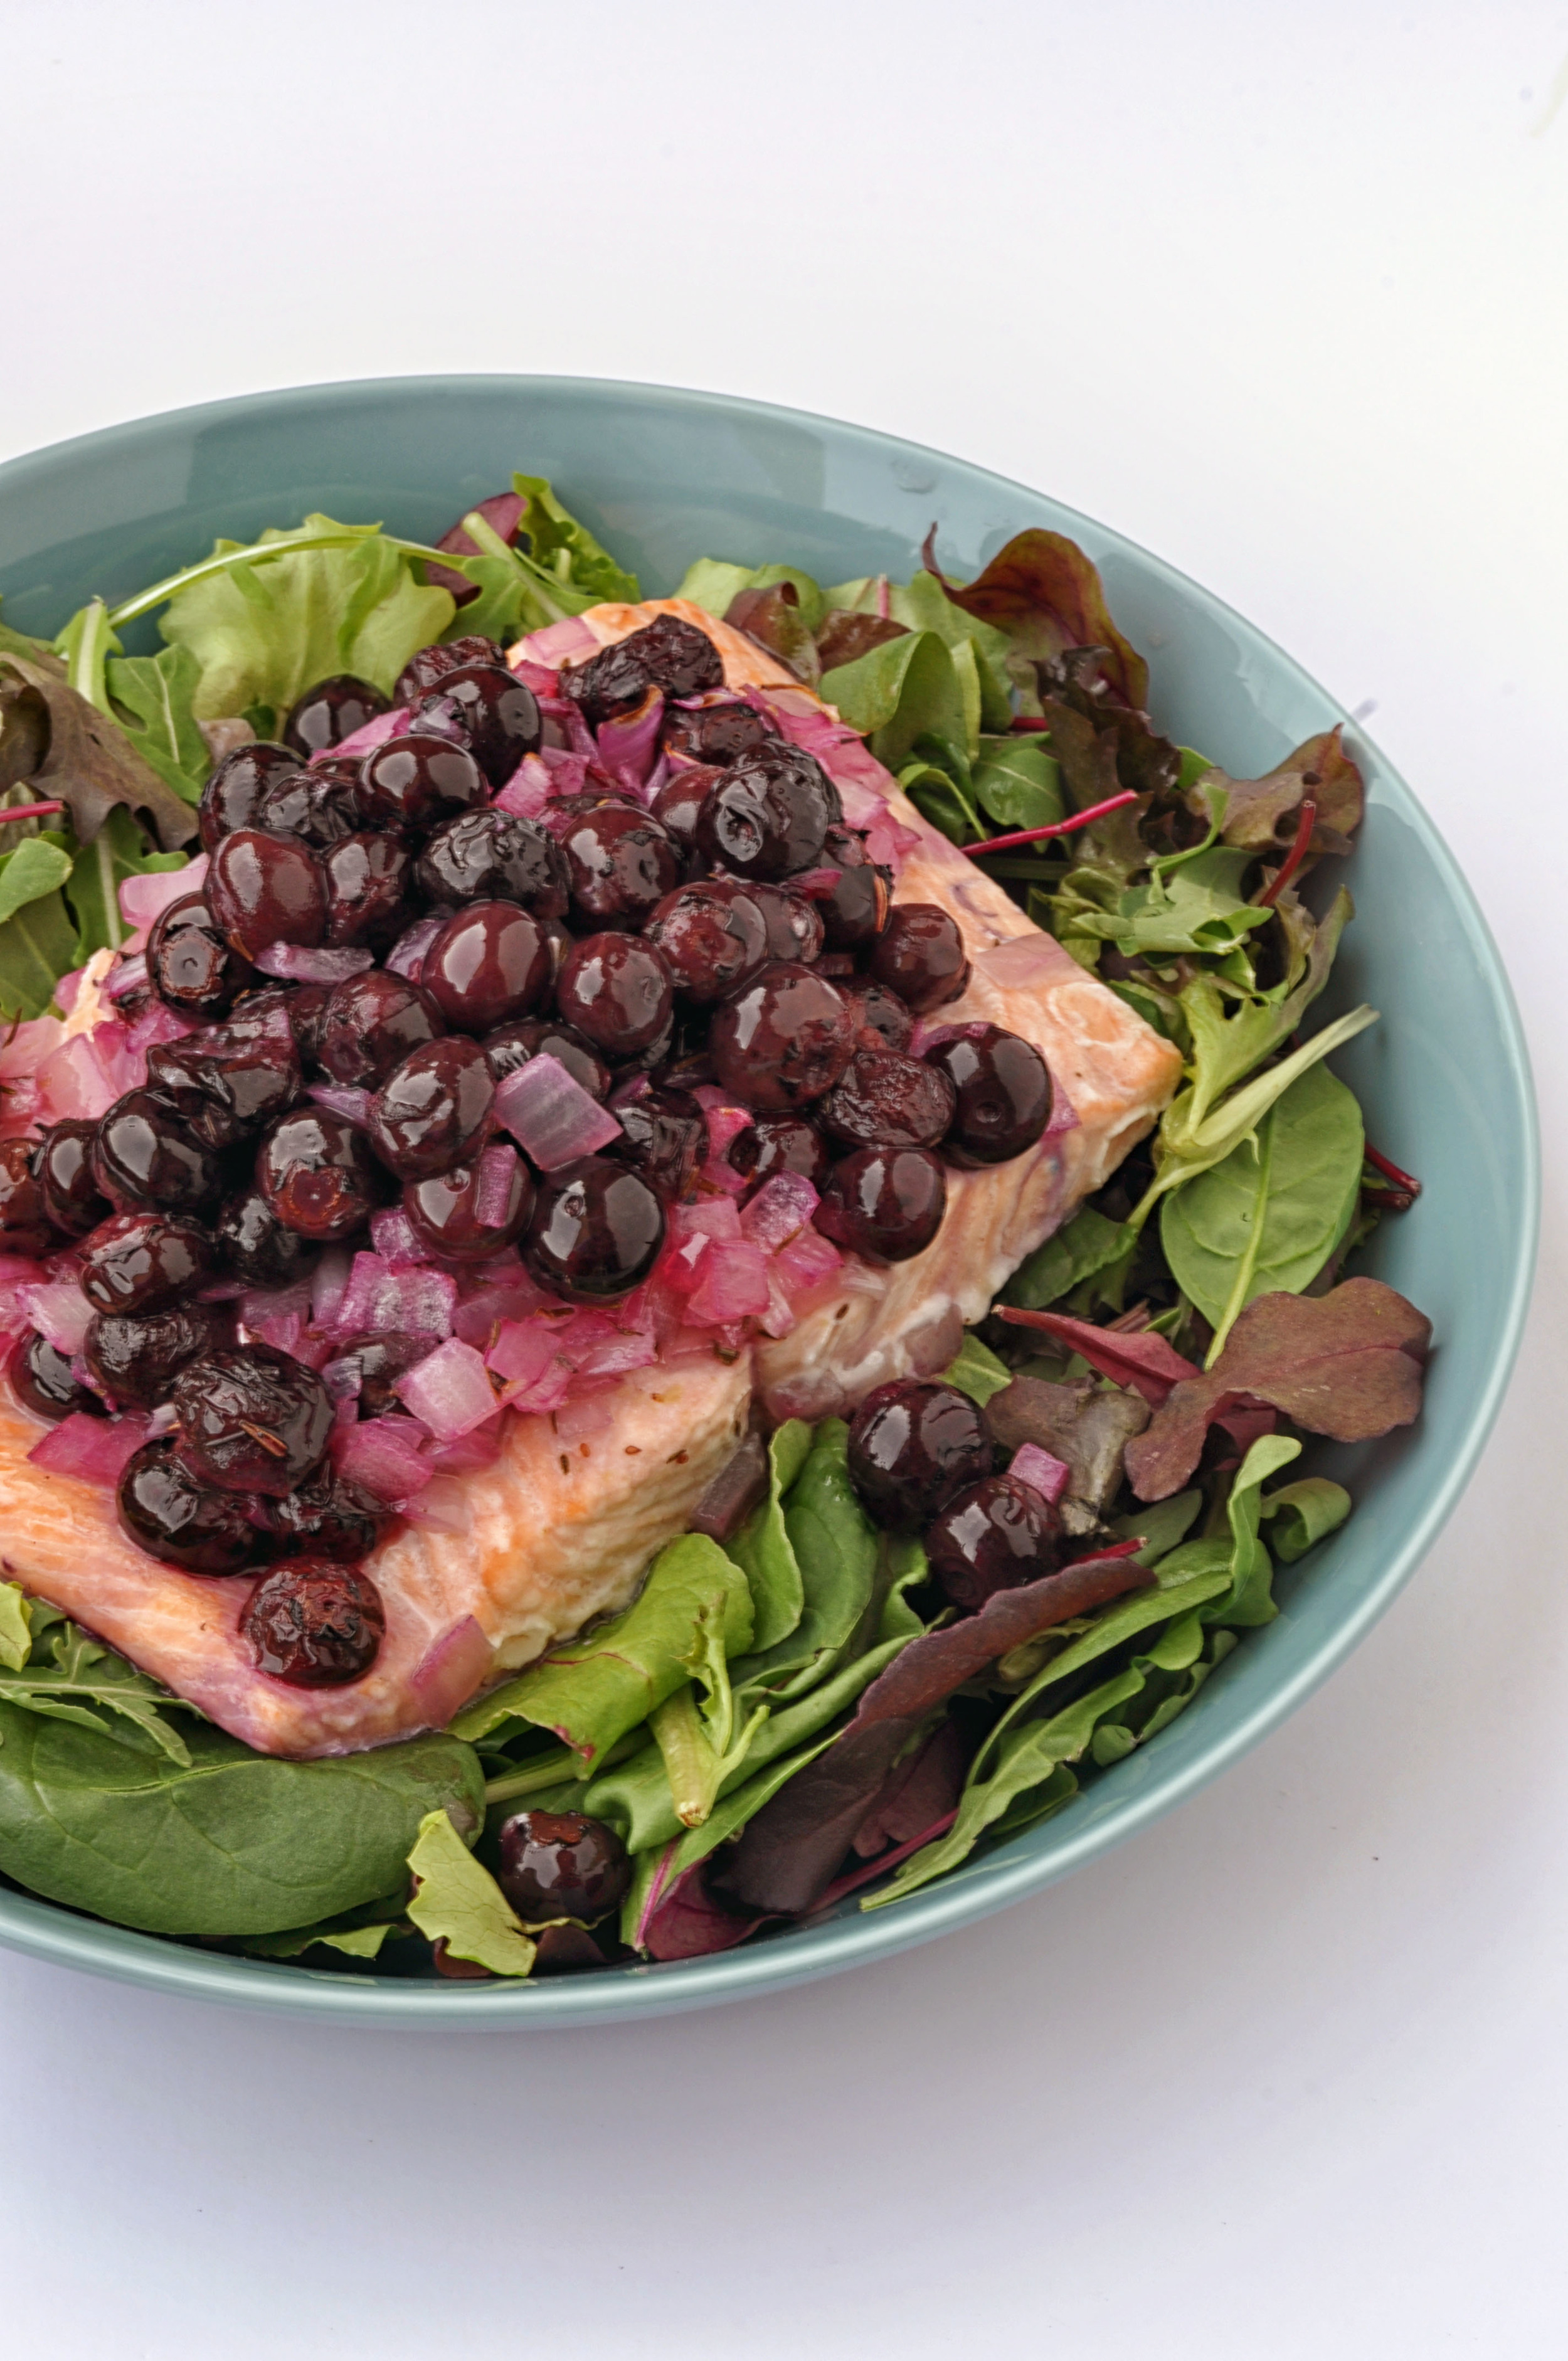 Salmon with Blueberries from This Healthy Table. Get the recipe here. - The blueberry sauce is rich and creamy and adds a real depth of flavor to the salmon.